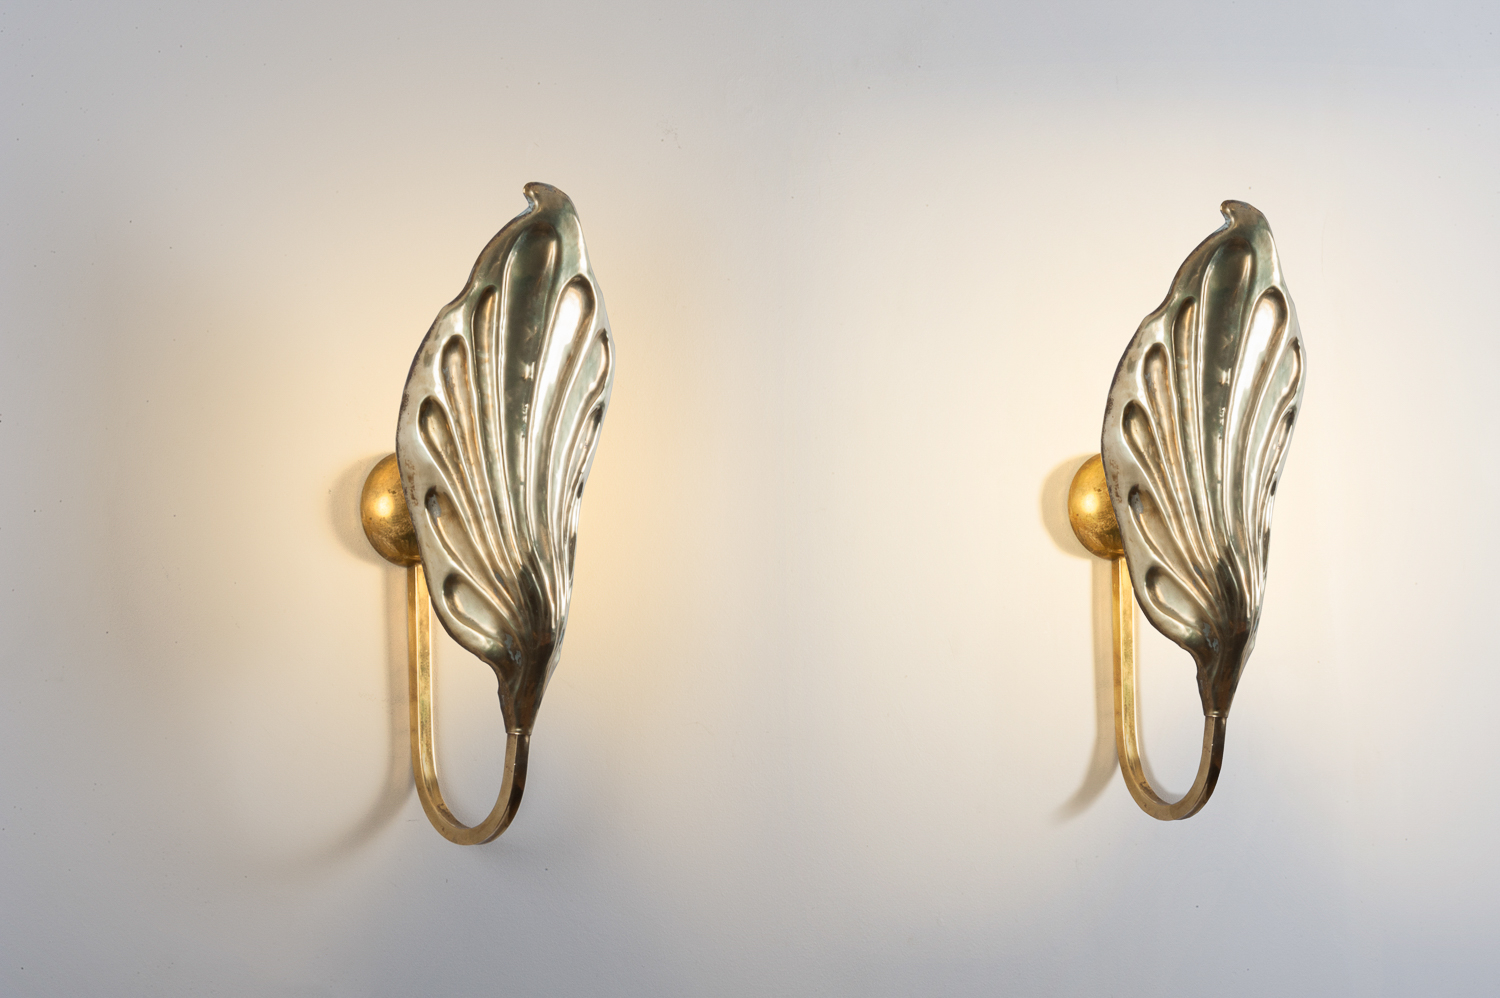 Pair of brass wall lights by Bottega Gadda